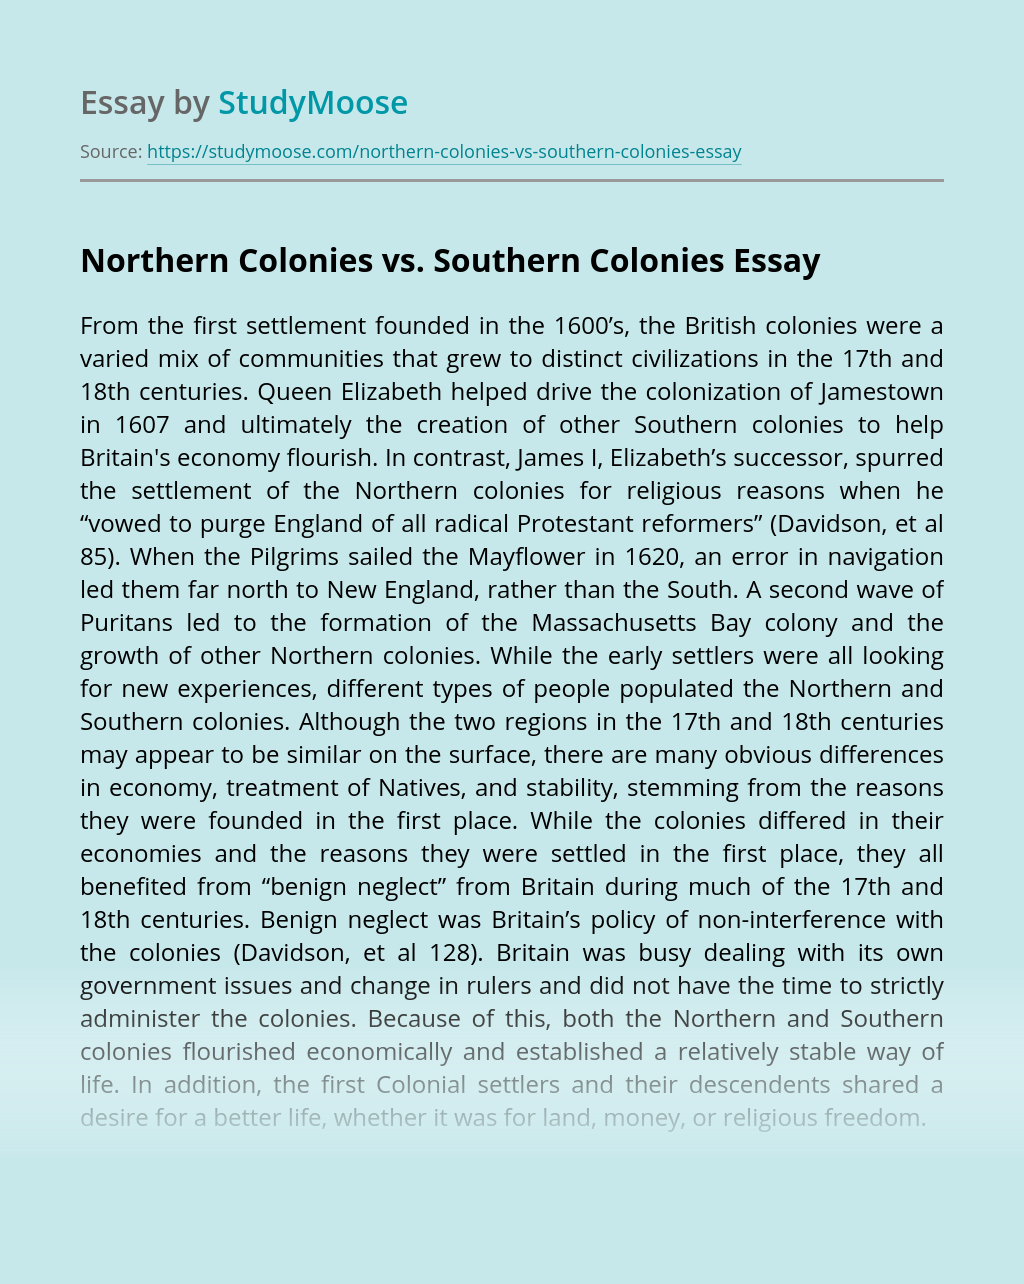 Northern Colonies vs. Southern Colonies